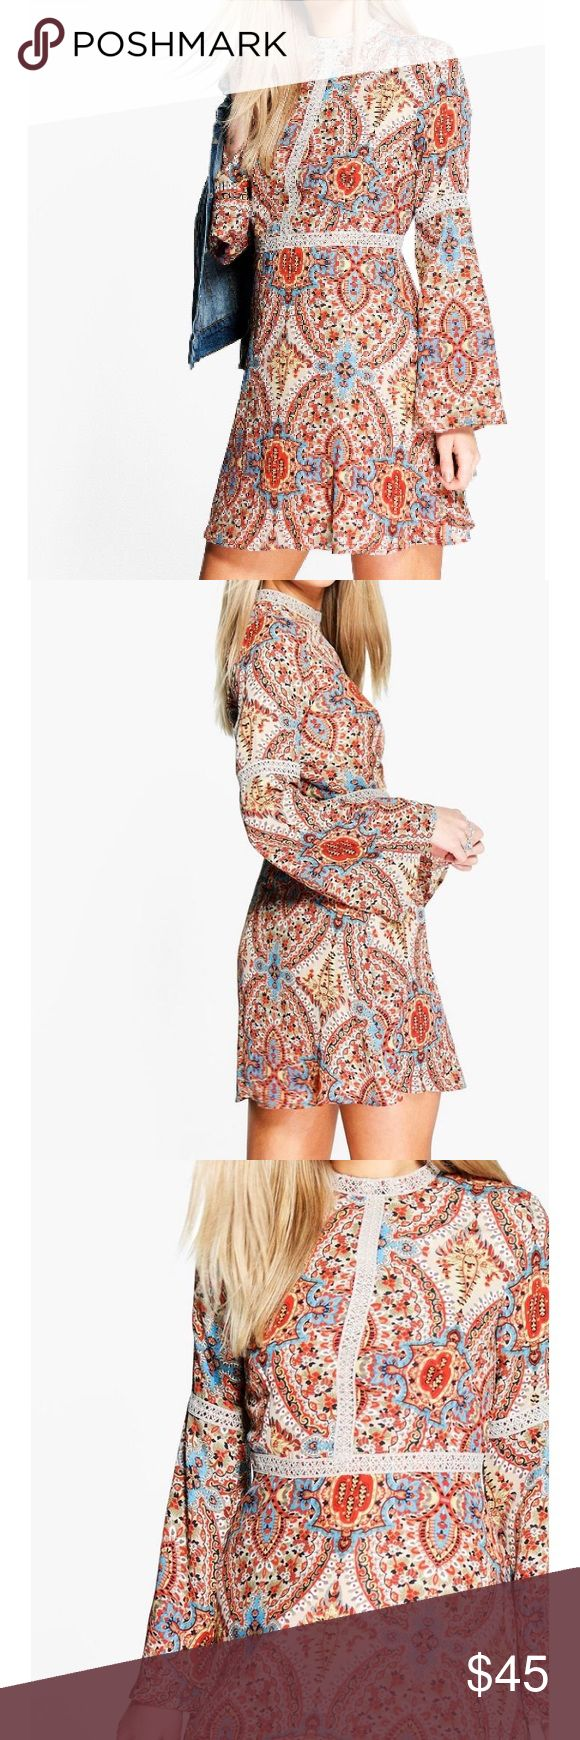 🆕 Pasliey print long sleeve, high neck dress Size: US 10  Color: Multi color   Mini dress  📍Wrap dress (does not have zippers) 📍Does not have much stretch  📍Worn once  Pet and smoke free home  Ships same or next business day Dresses Mini